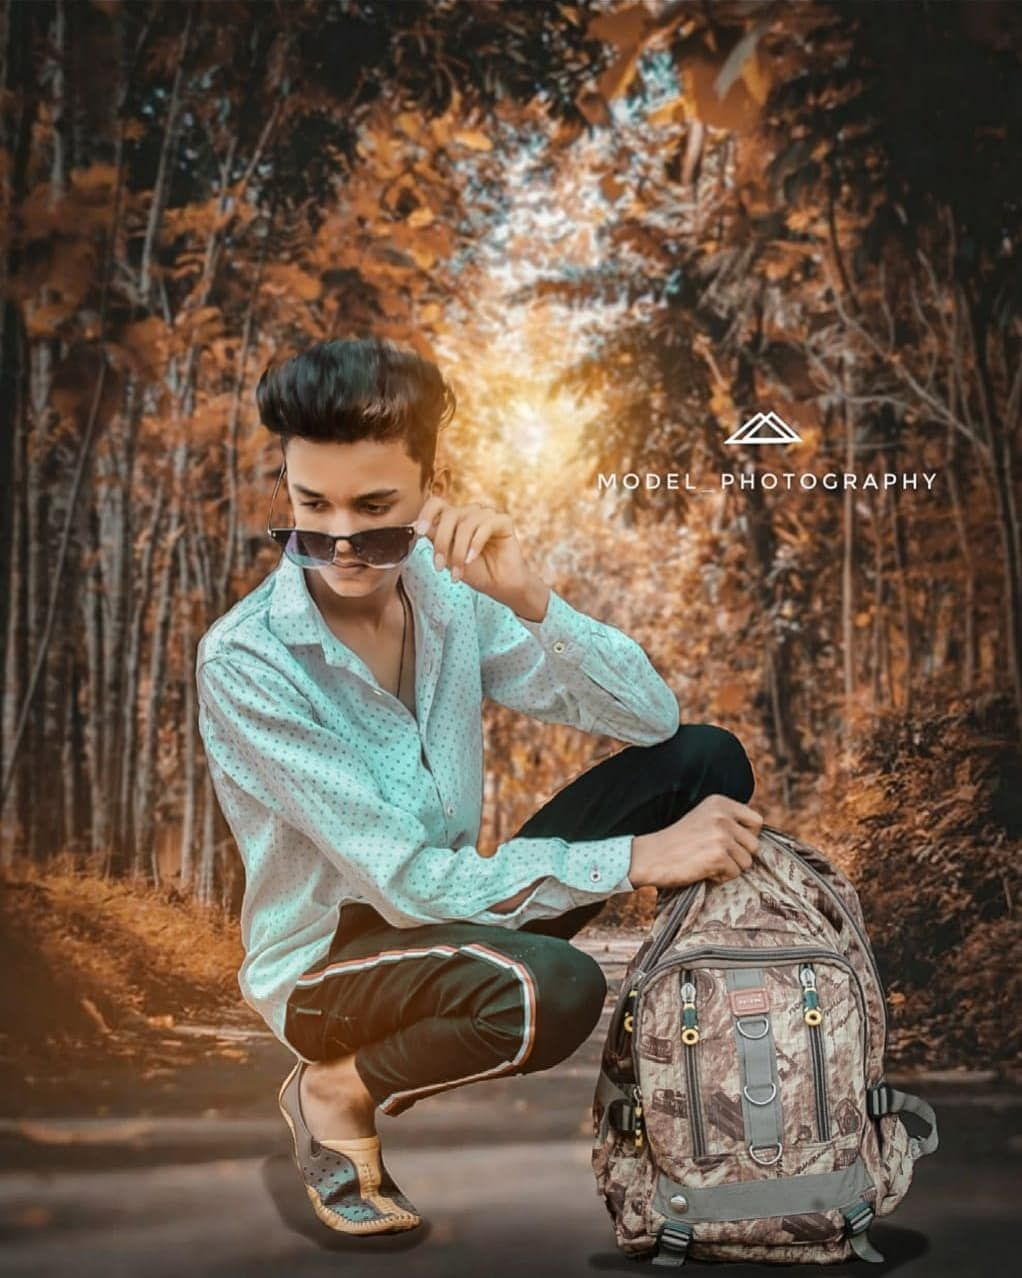 STYLISH DP EDITING 👨 💻😍        MSG ME TO BOOK YOUR